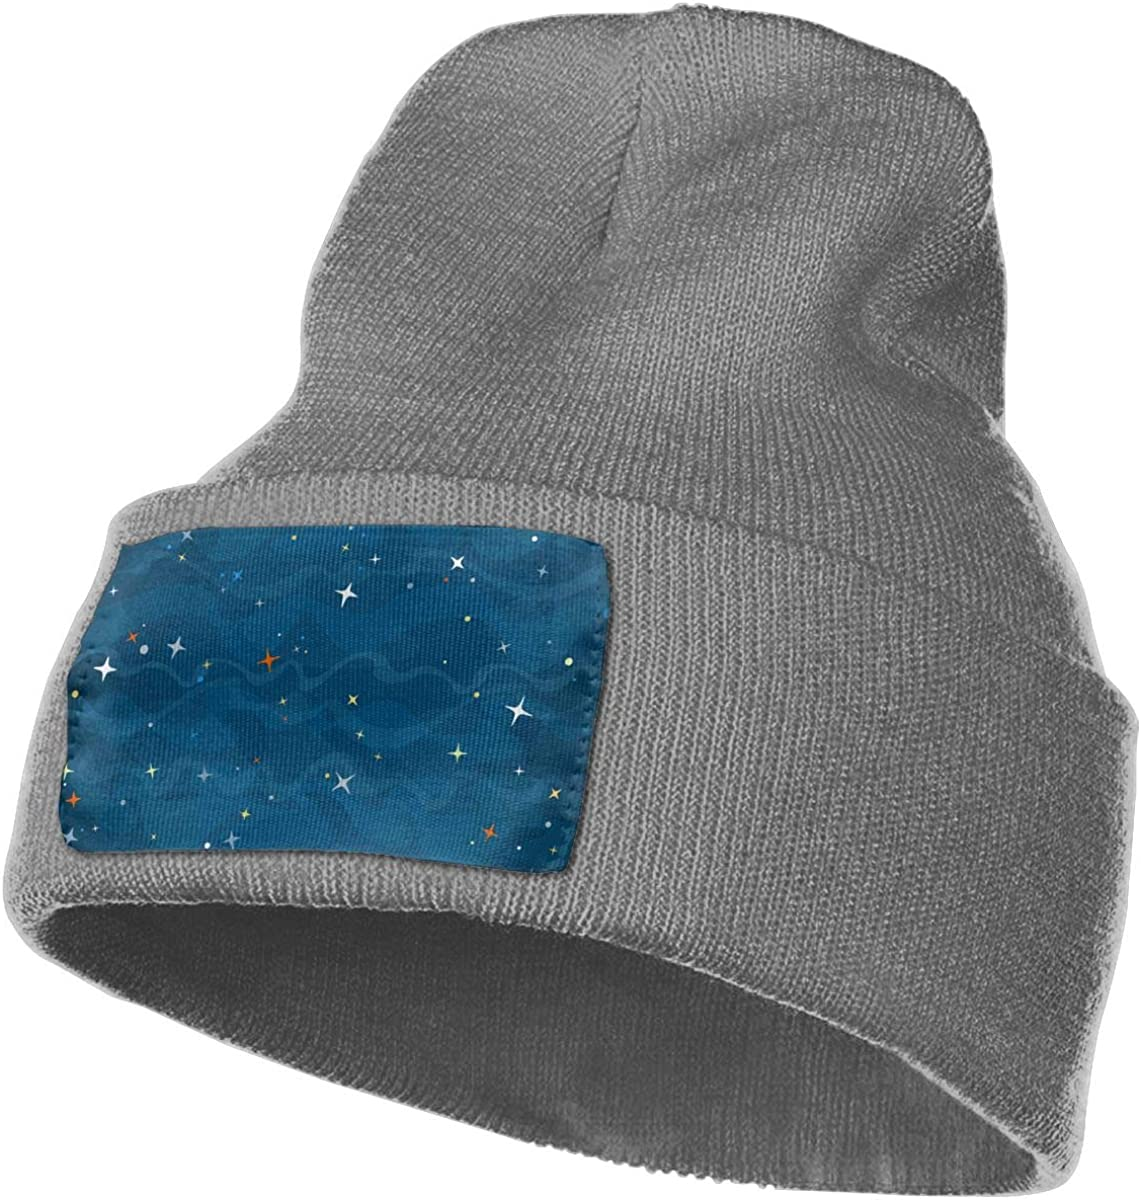 Yubb7E Outer-Space Warm Knit Winter Solid Beanie Hat Unisex Skull Cap